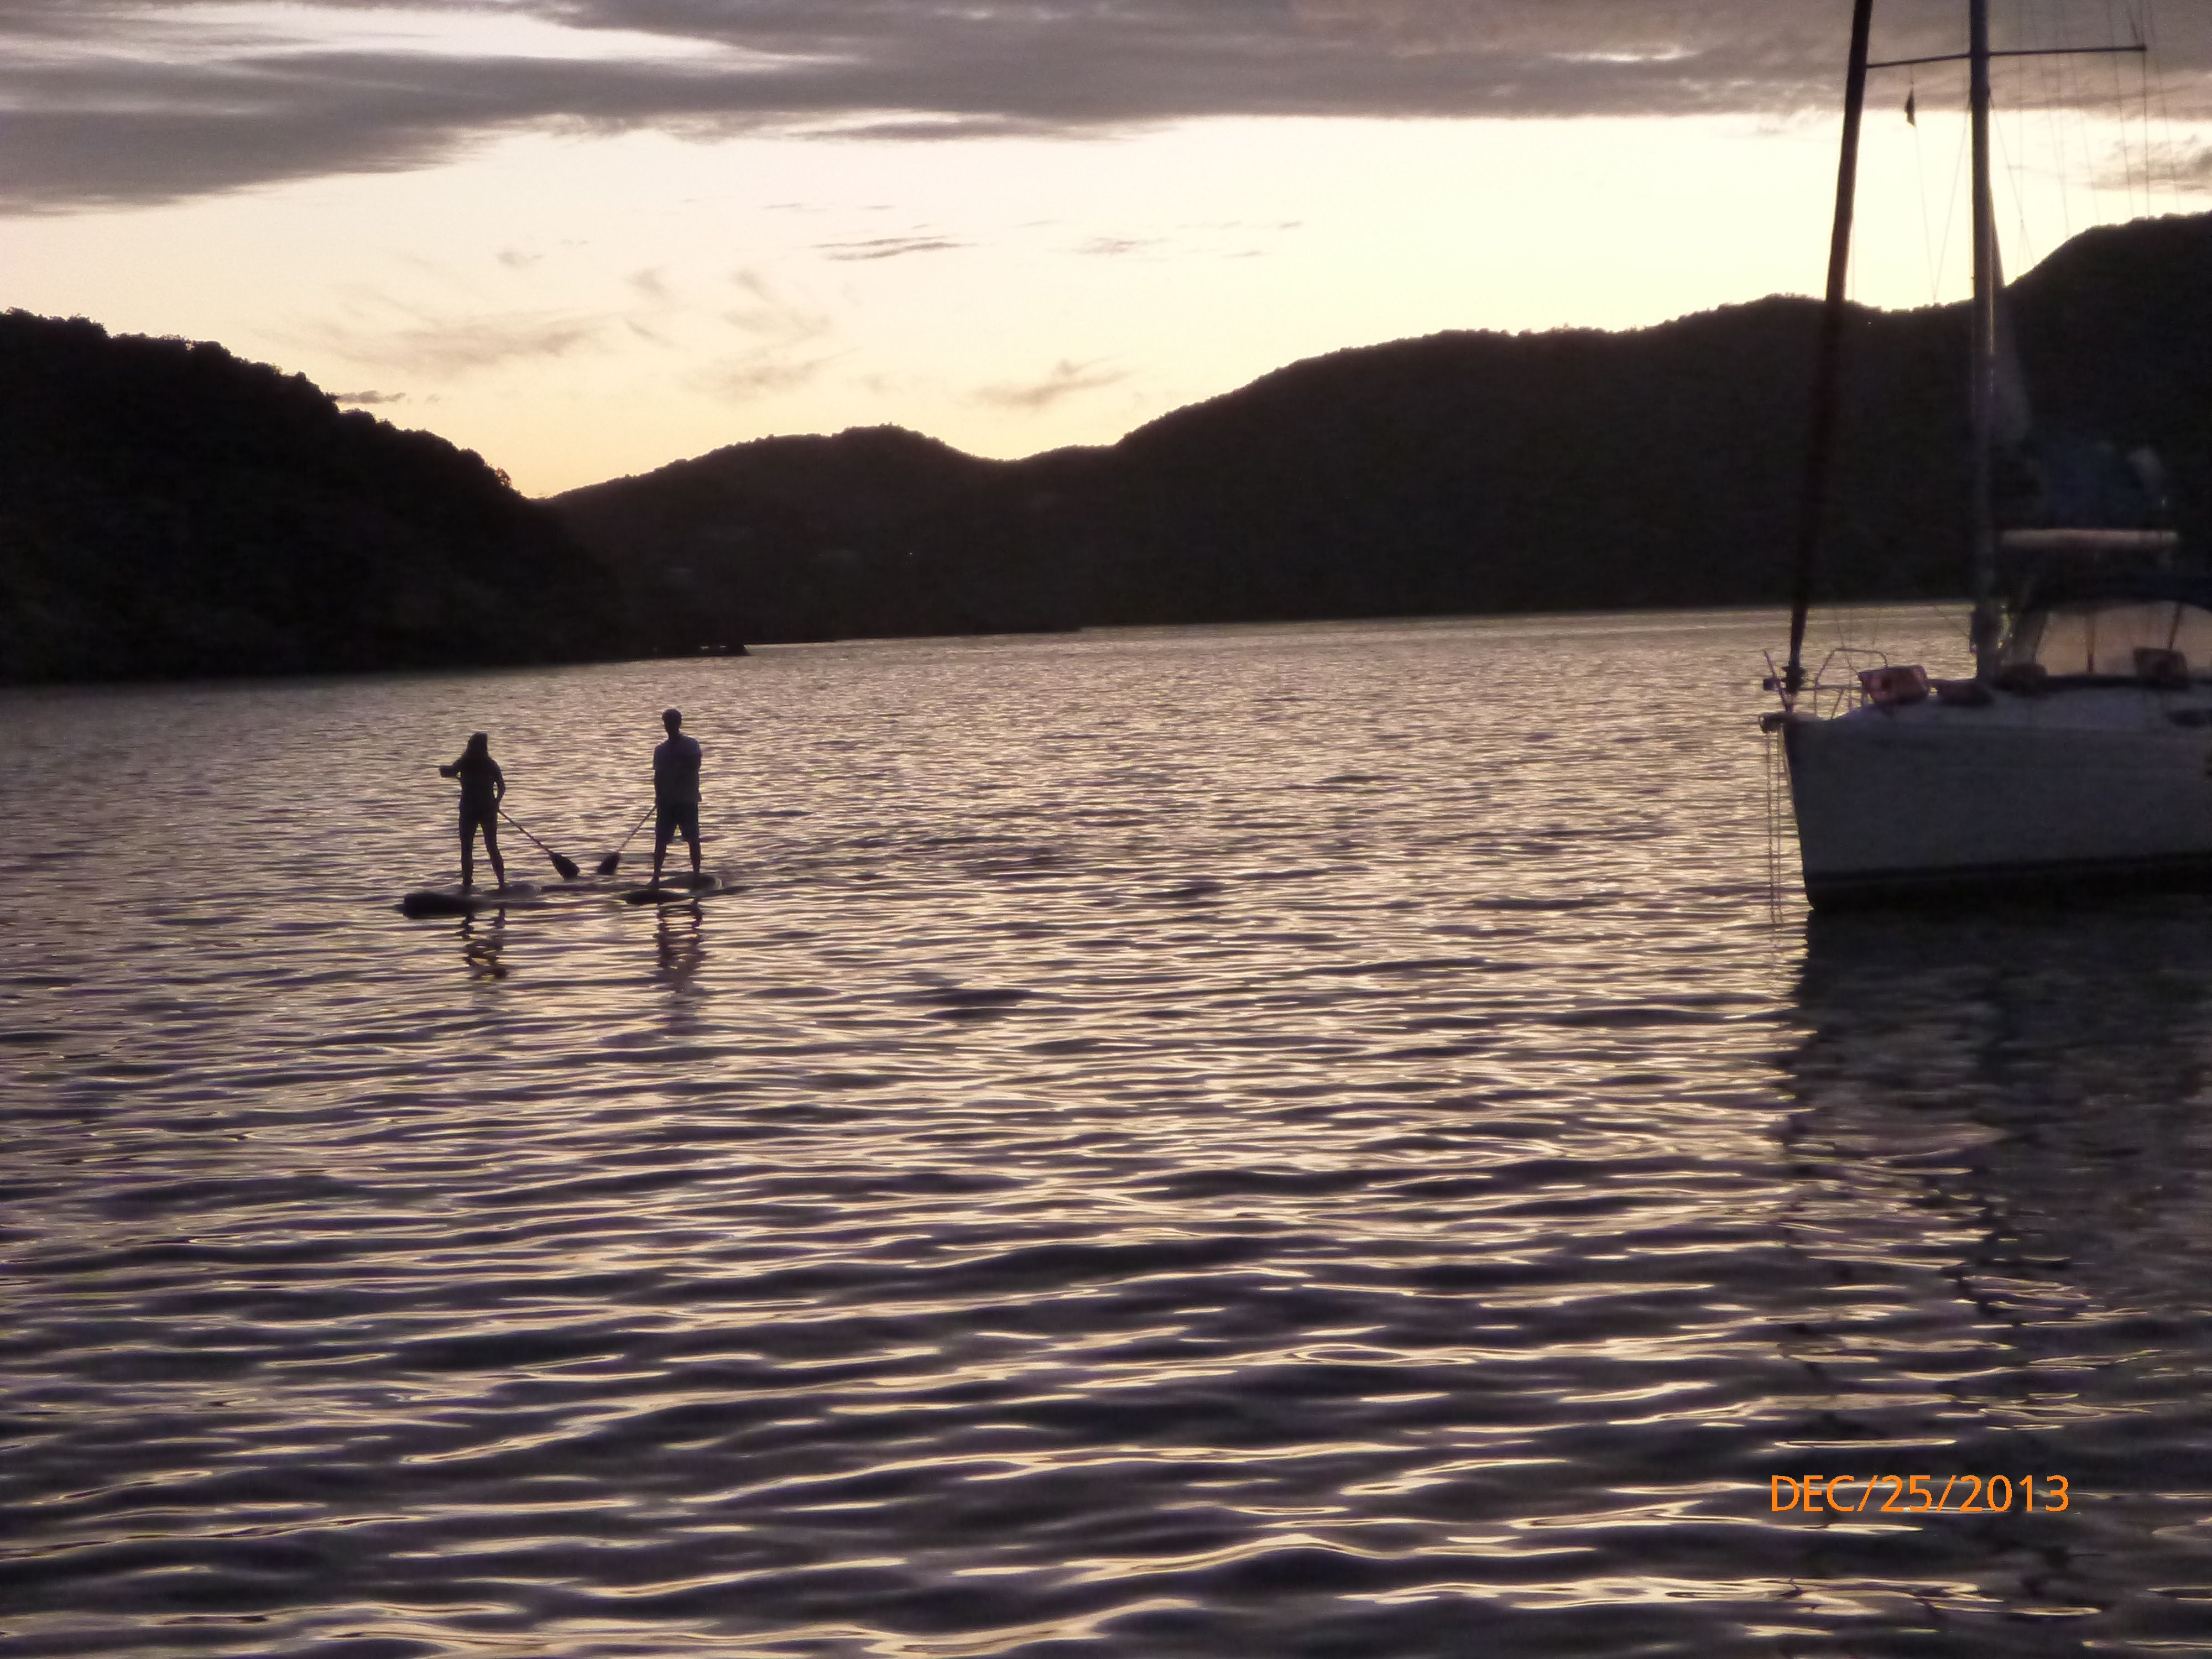 Paddle boarding at sunset...